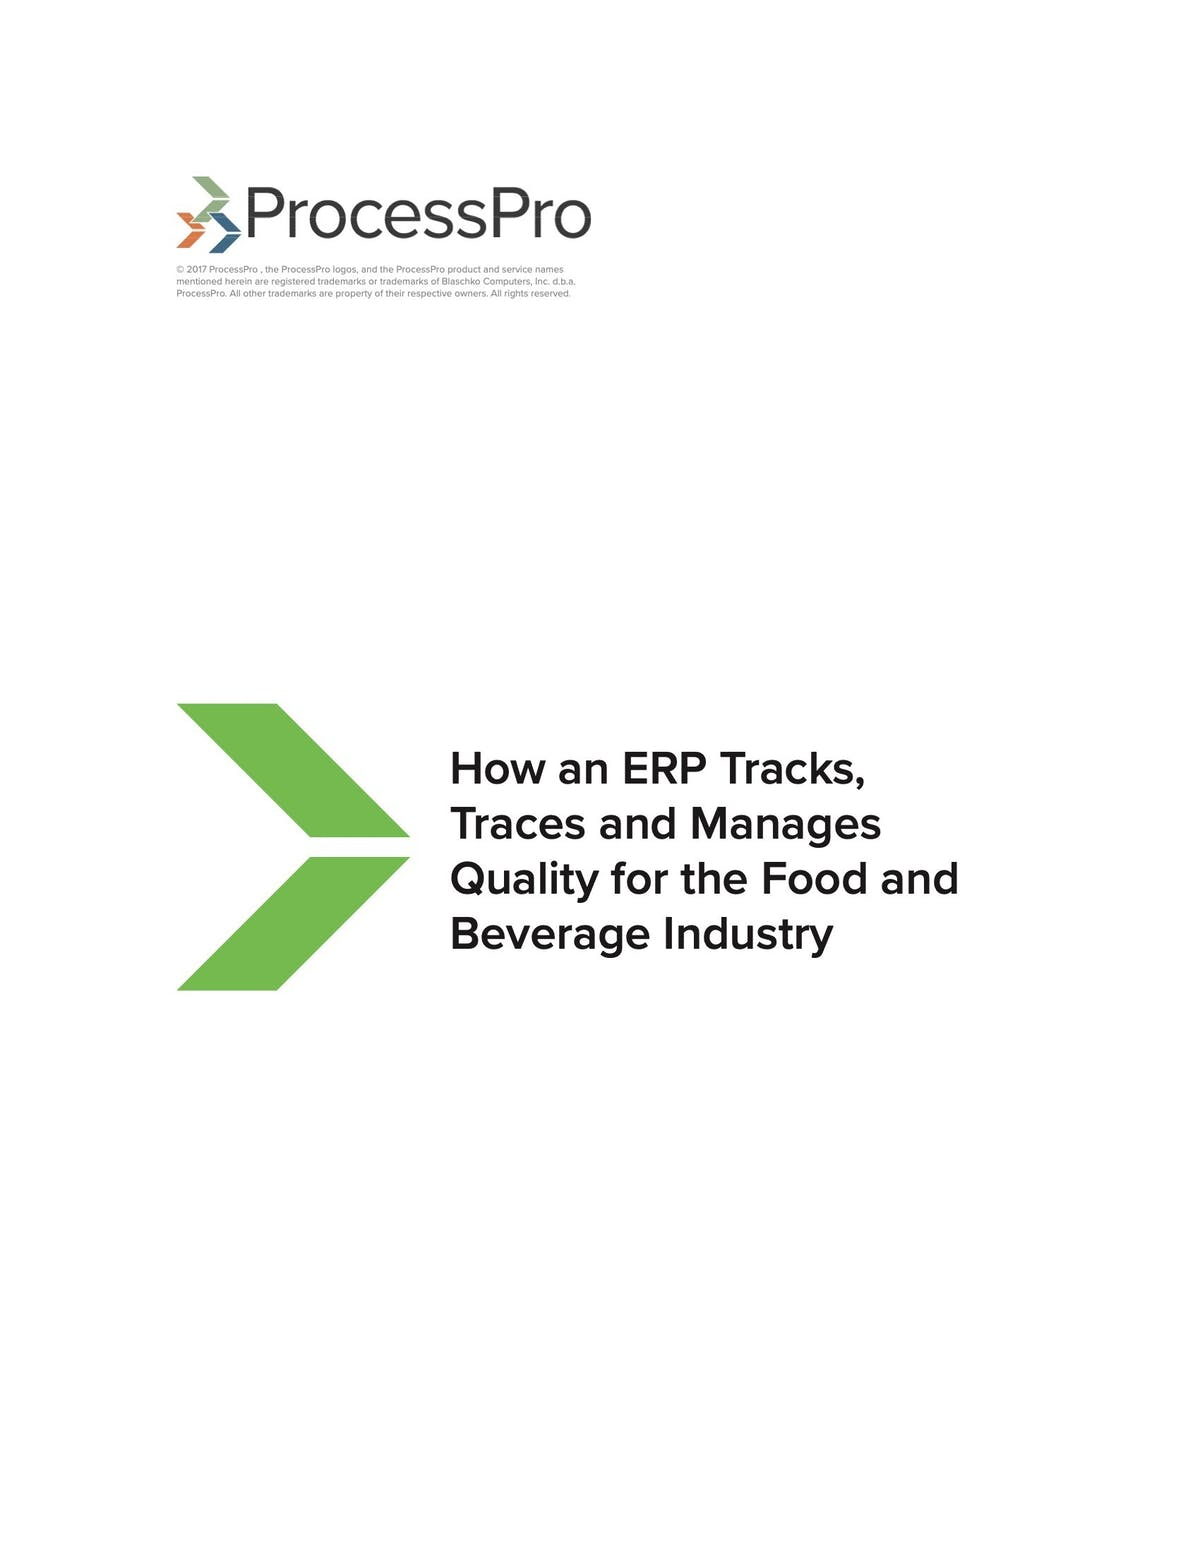 ProcessPro White Paper - How an ERP Tracks, Traces and Manages Quality for the Food and Beverage Industry